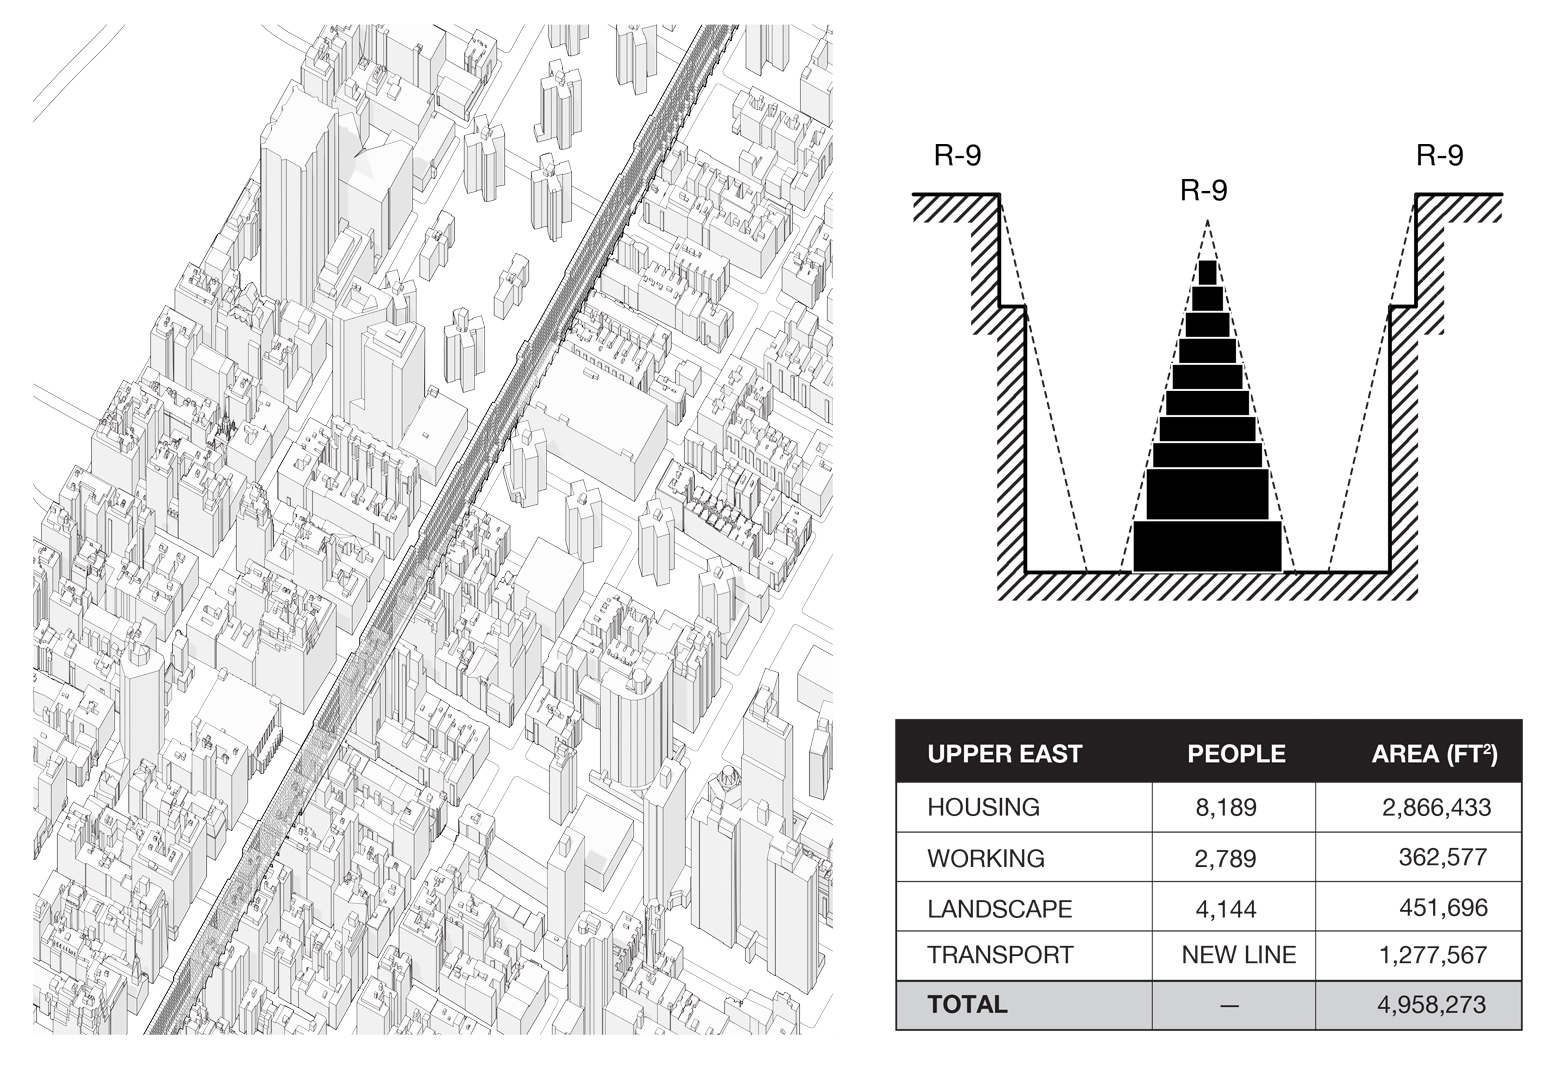 Data, section, and axon drawings for the proposed ININ infill massing inserted along throughout Park Avenue on the Upper East